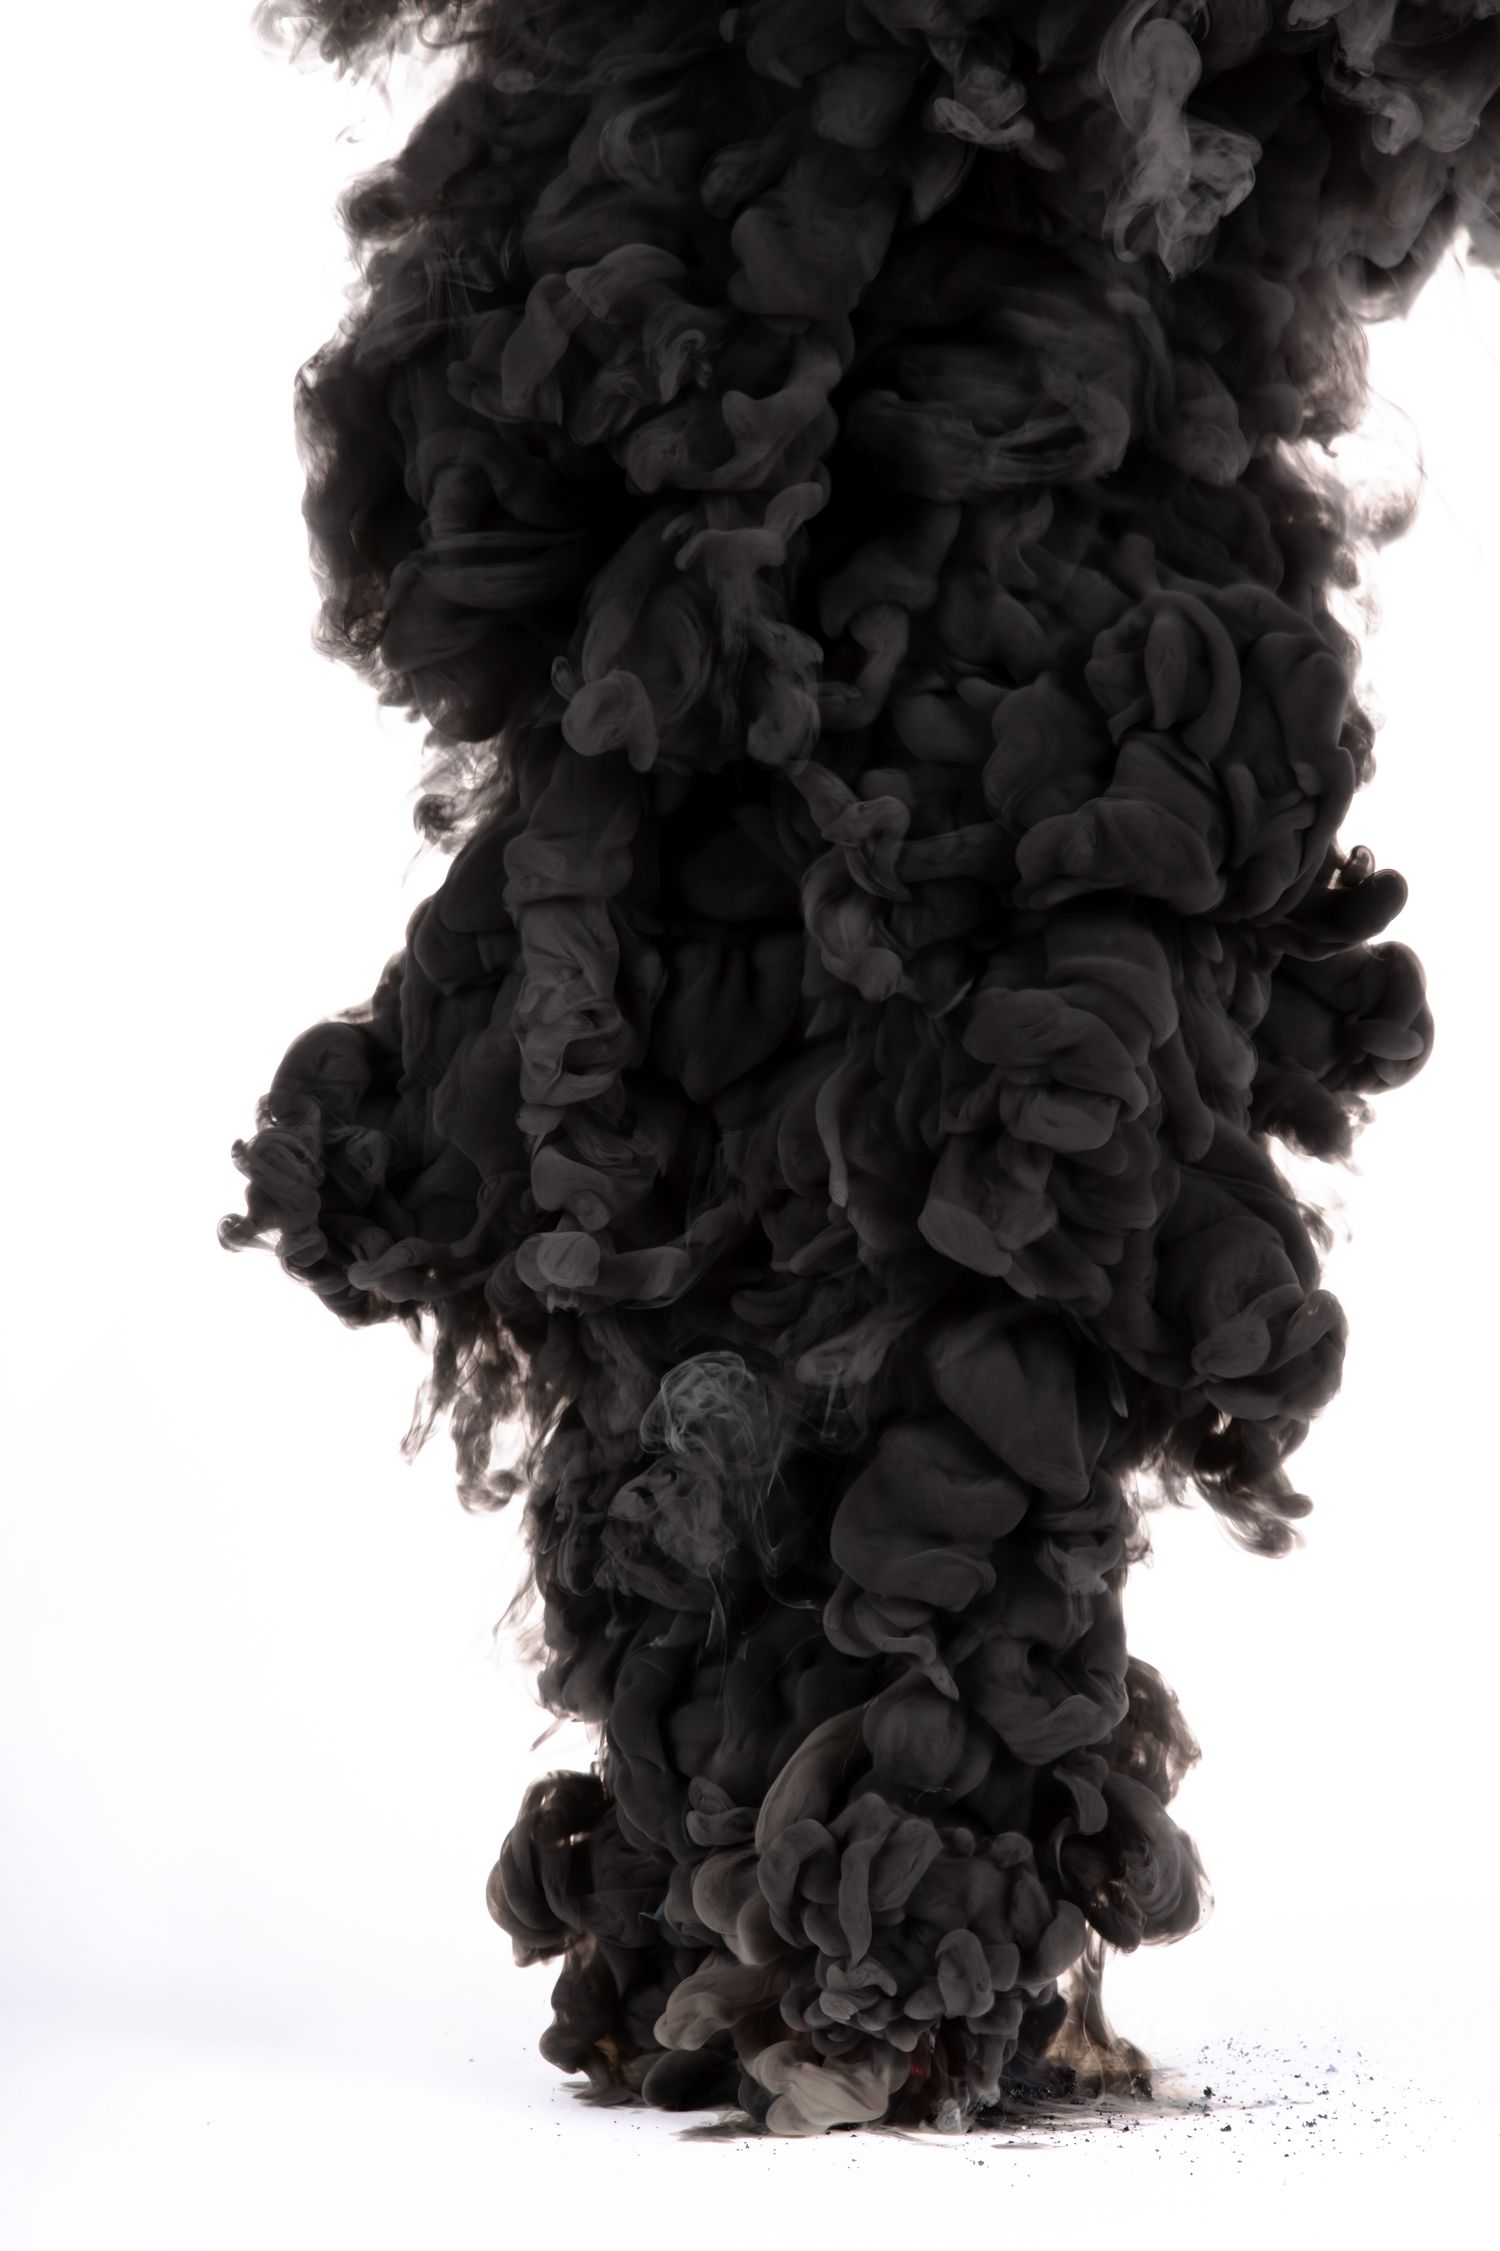 Controlled Burns By Kevin Cooley Ignant Black Phone Wallpaper Black Wallpaper Iphone Wallpaper Smoke